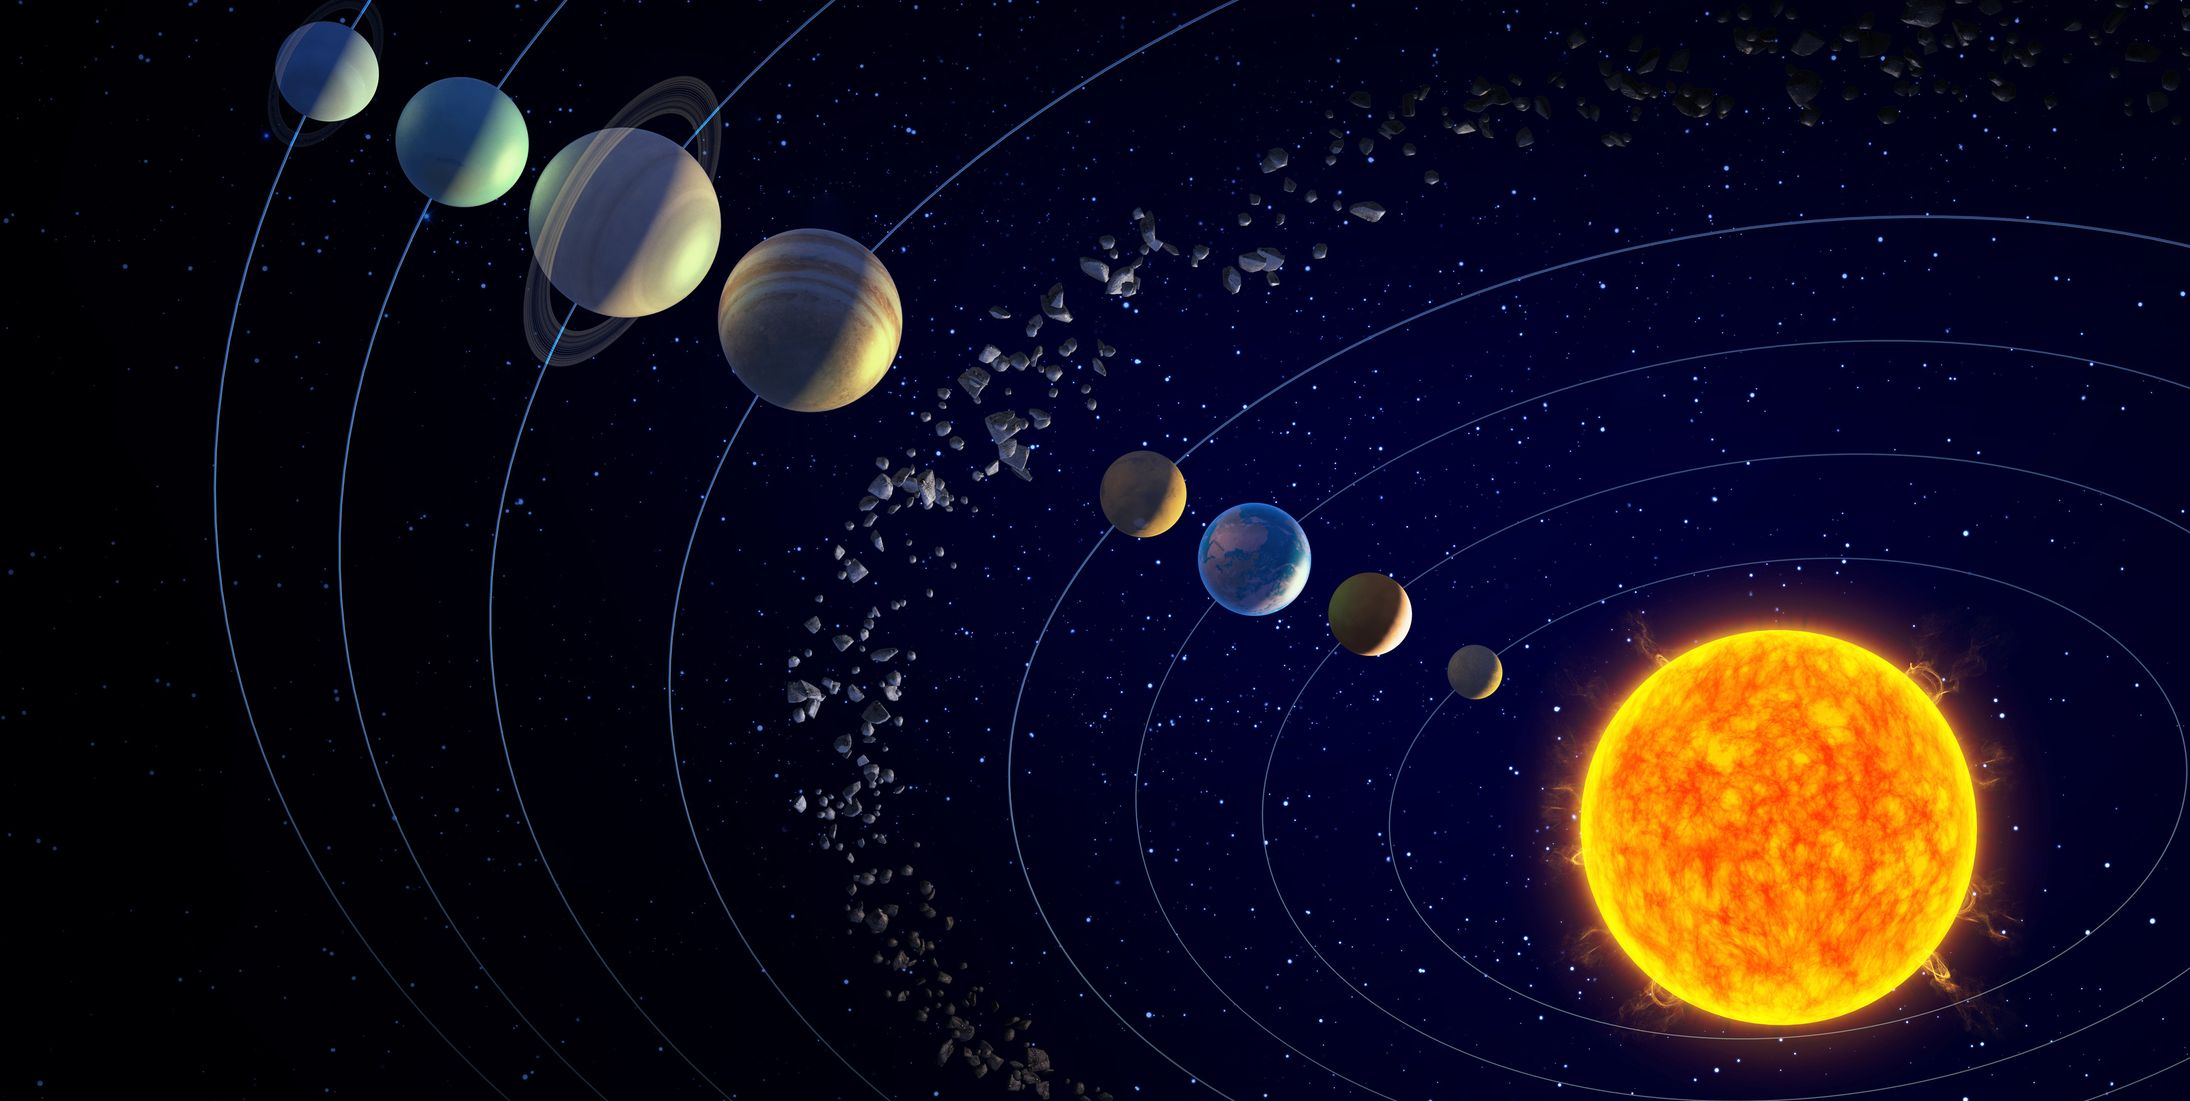 Solar system and sun